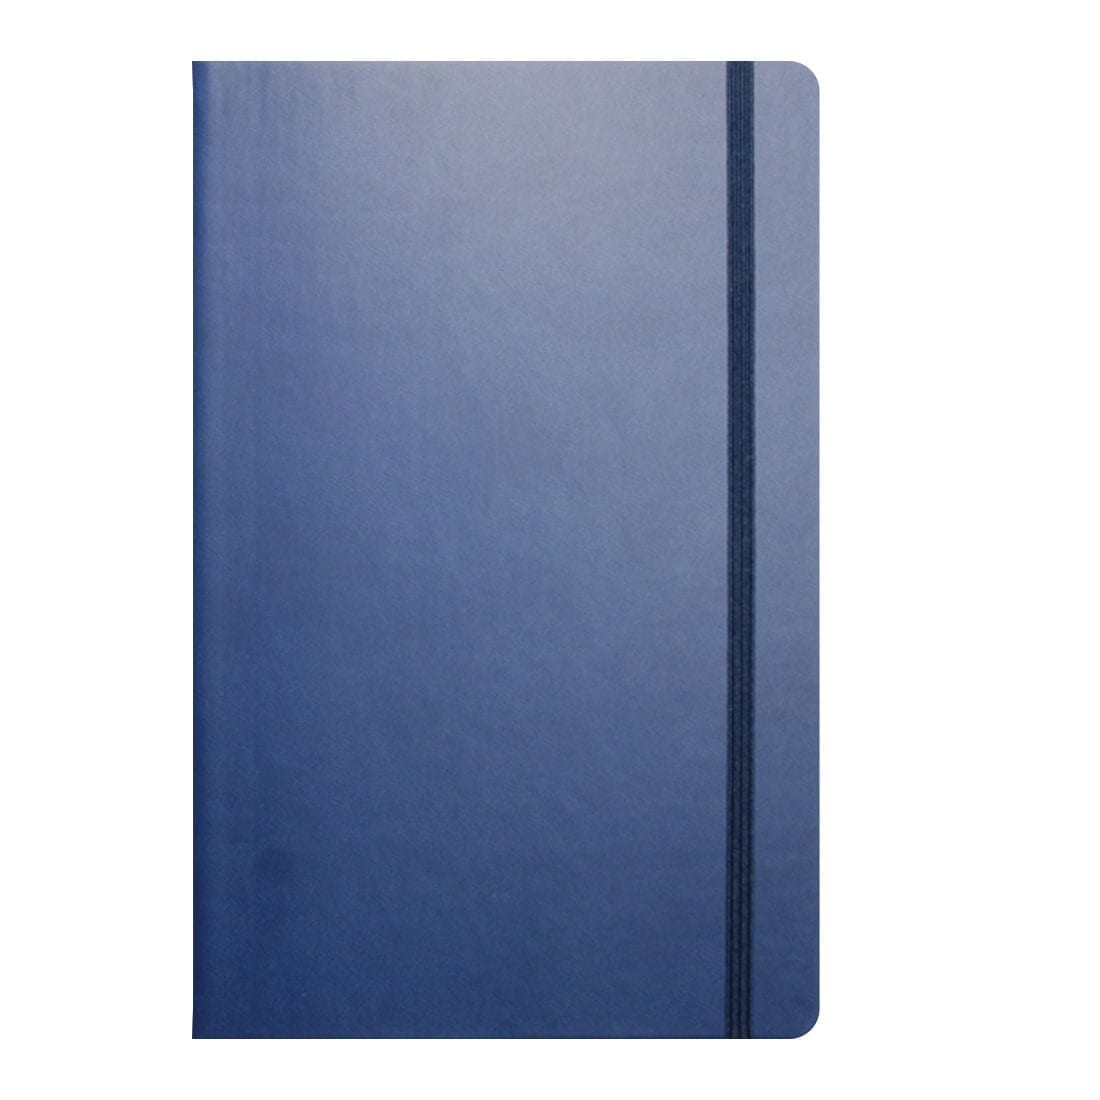 Zest Promotional Tucson Medium Notebooks are custom branded